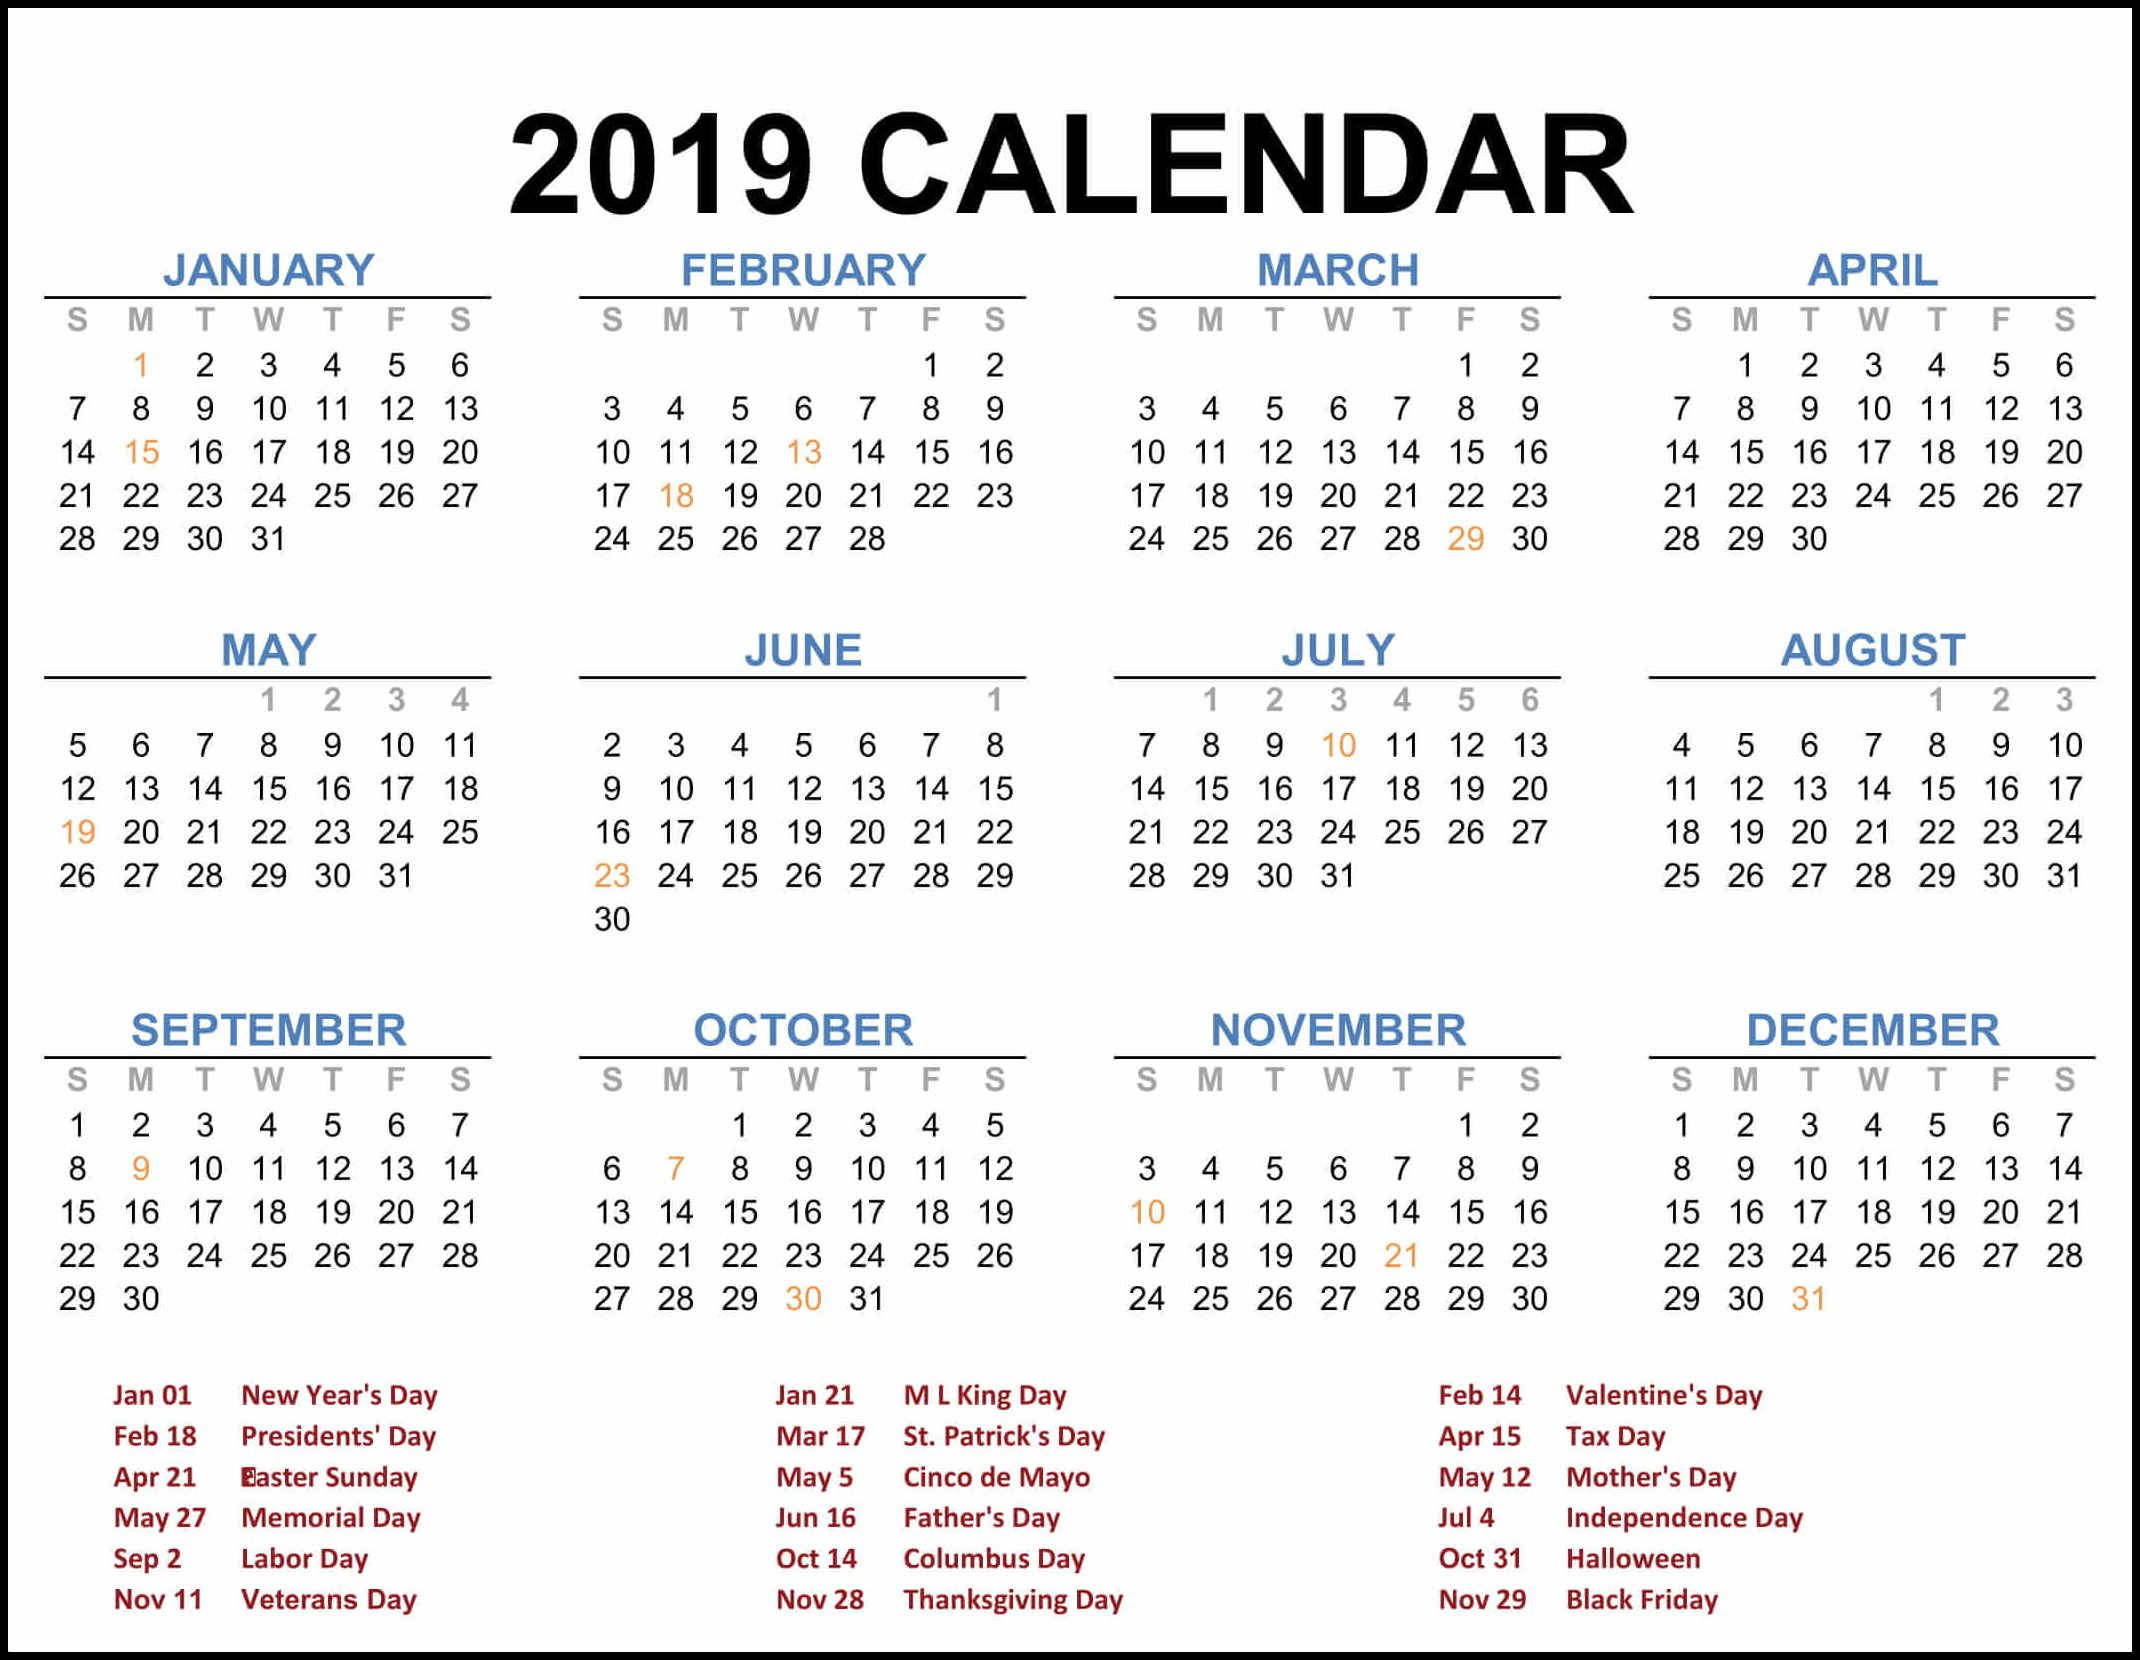 2019 Federal Holiday Calendar | 2019 Calendar Template In One Pages throughout 1 Page Calendar 2019-2020 With Major Holidays